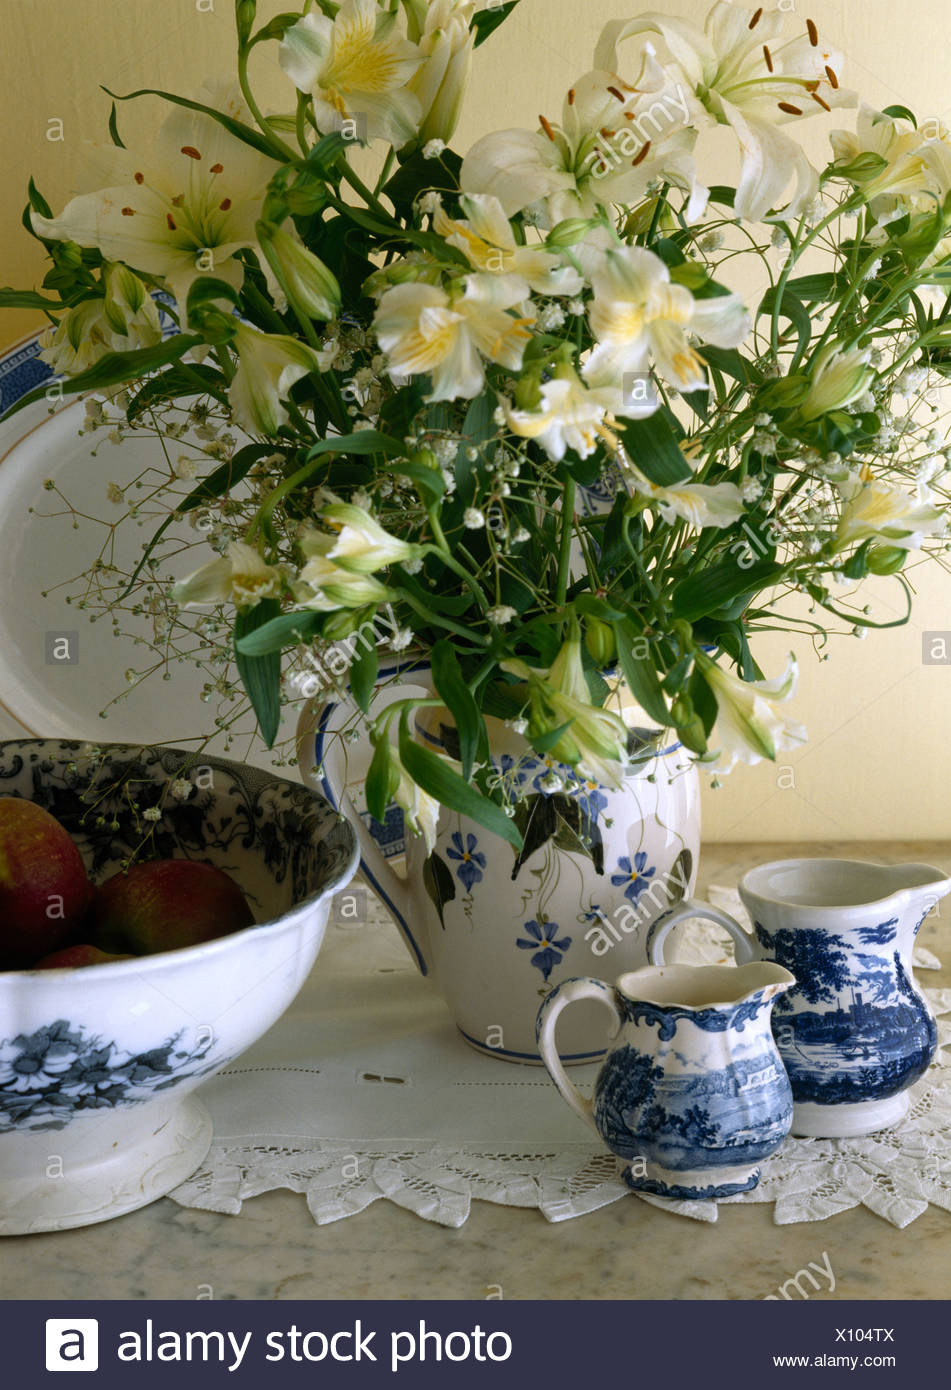 Still Life Of Cream Lilies In Old Blue Patterned Jug On Table With